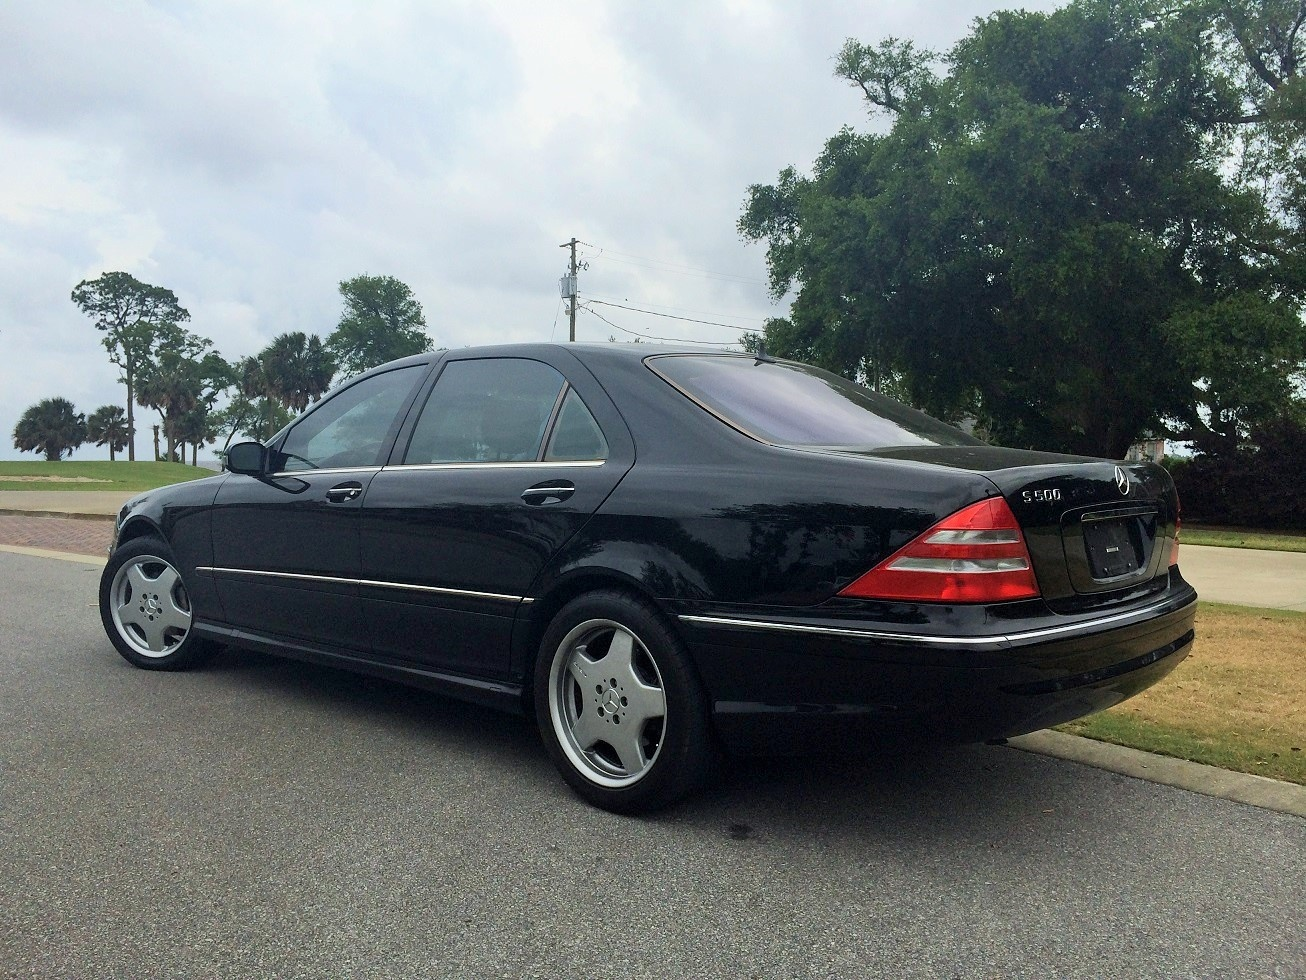 2002 mercedes benz s class pictures cargurus On mercedes benz s500 2002